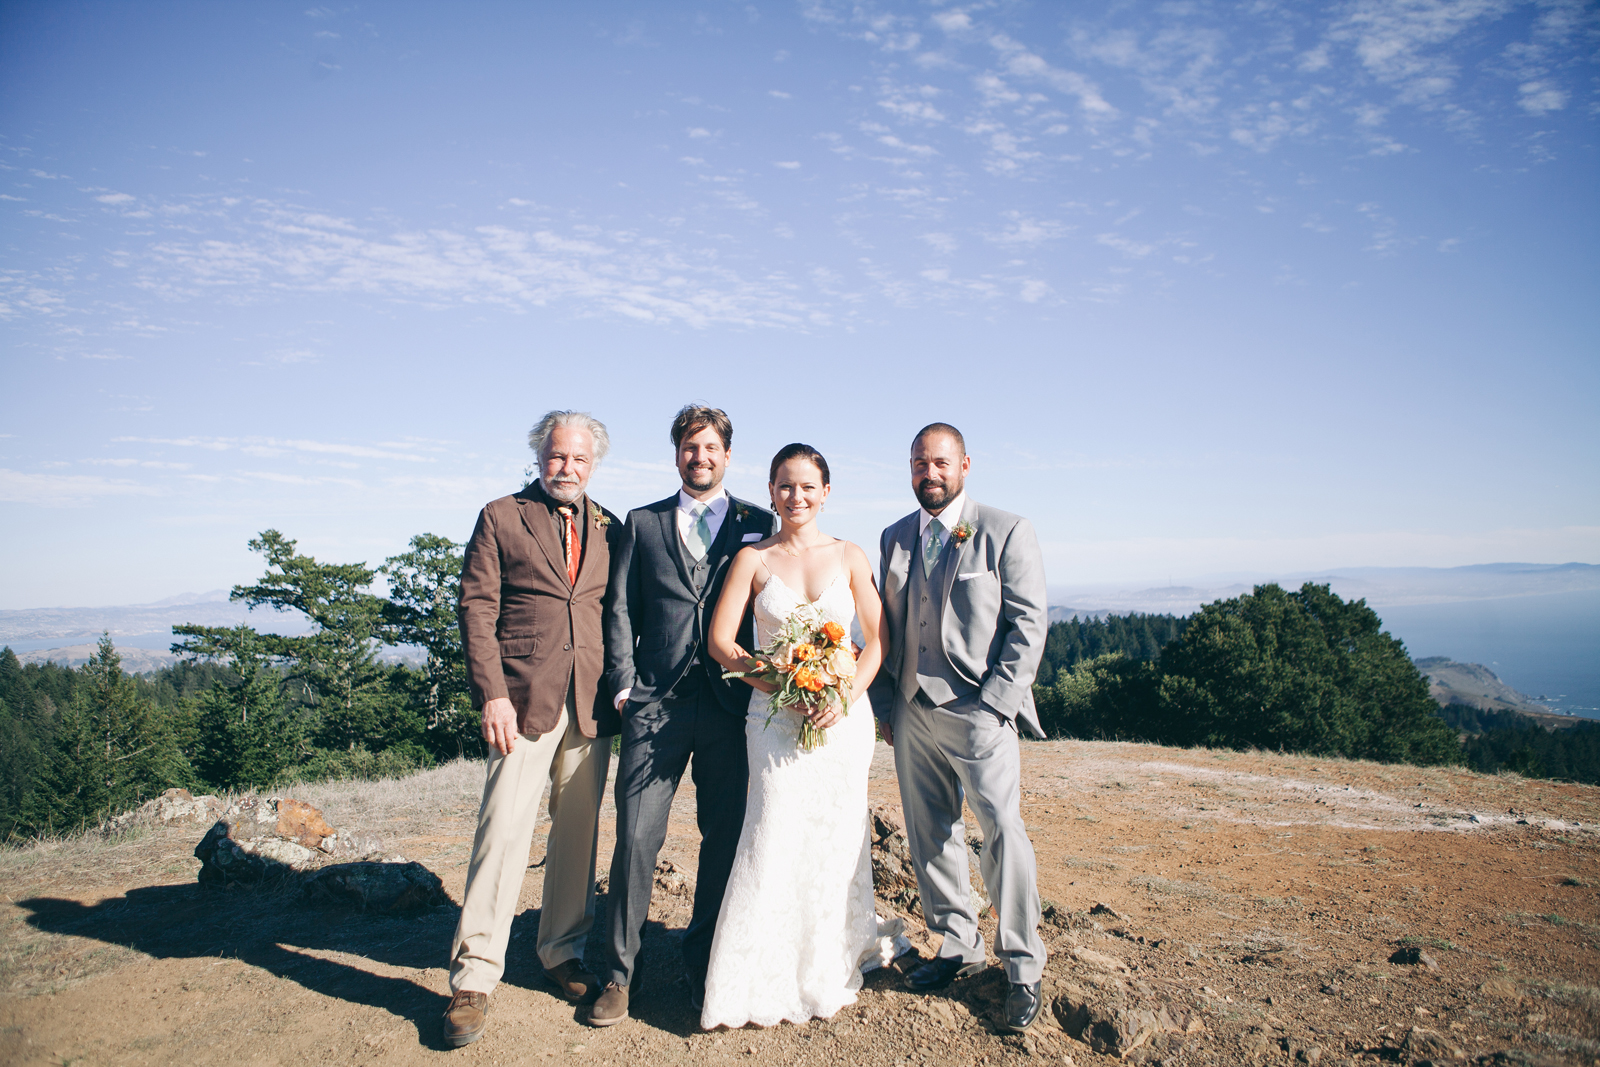 mt_tam_wedding_photography_marin_zac_katie_ebony_siovhan_bokeh_photography_23.jpg